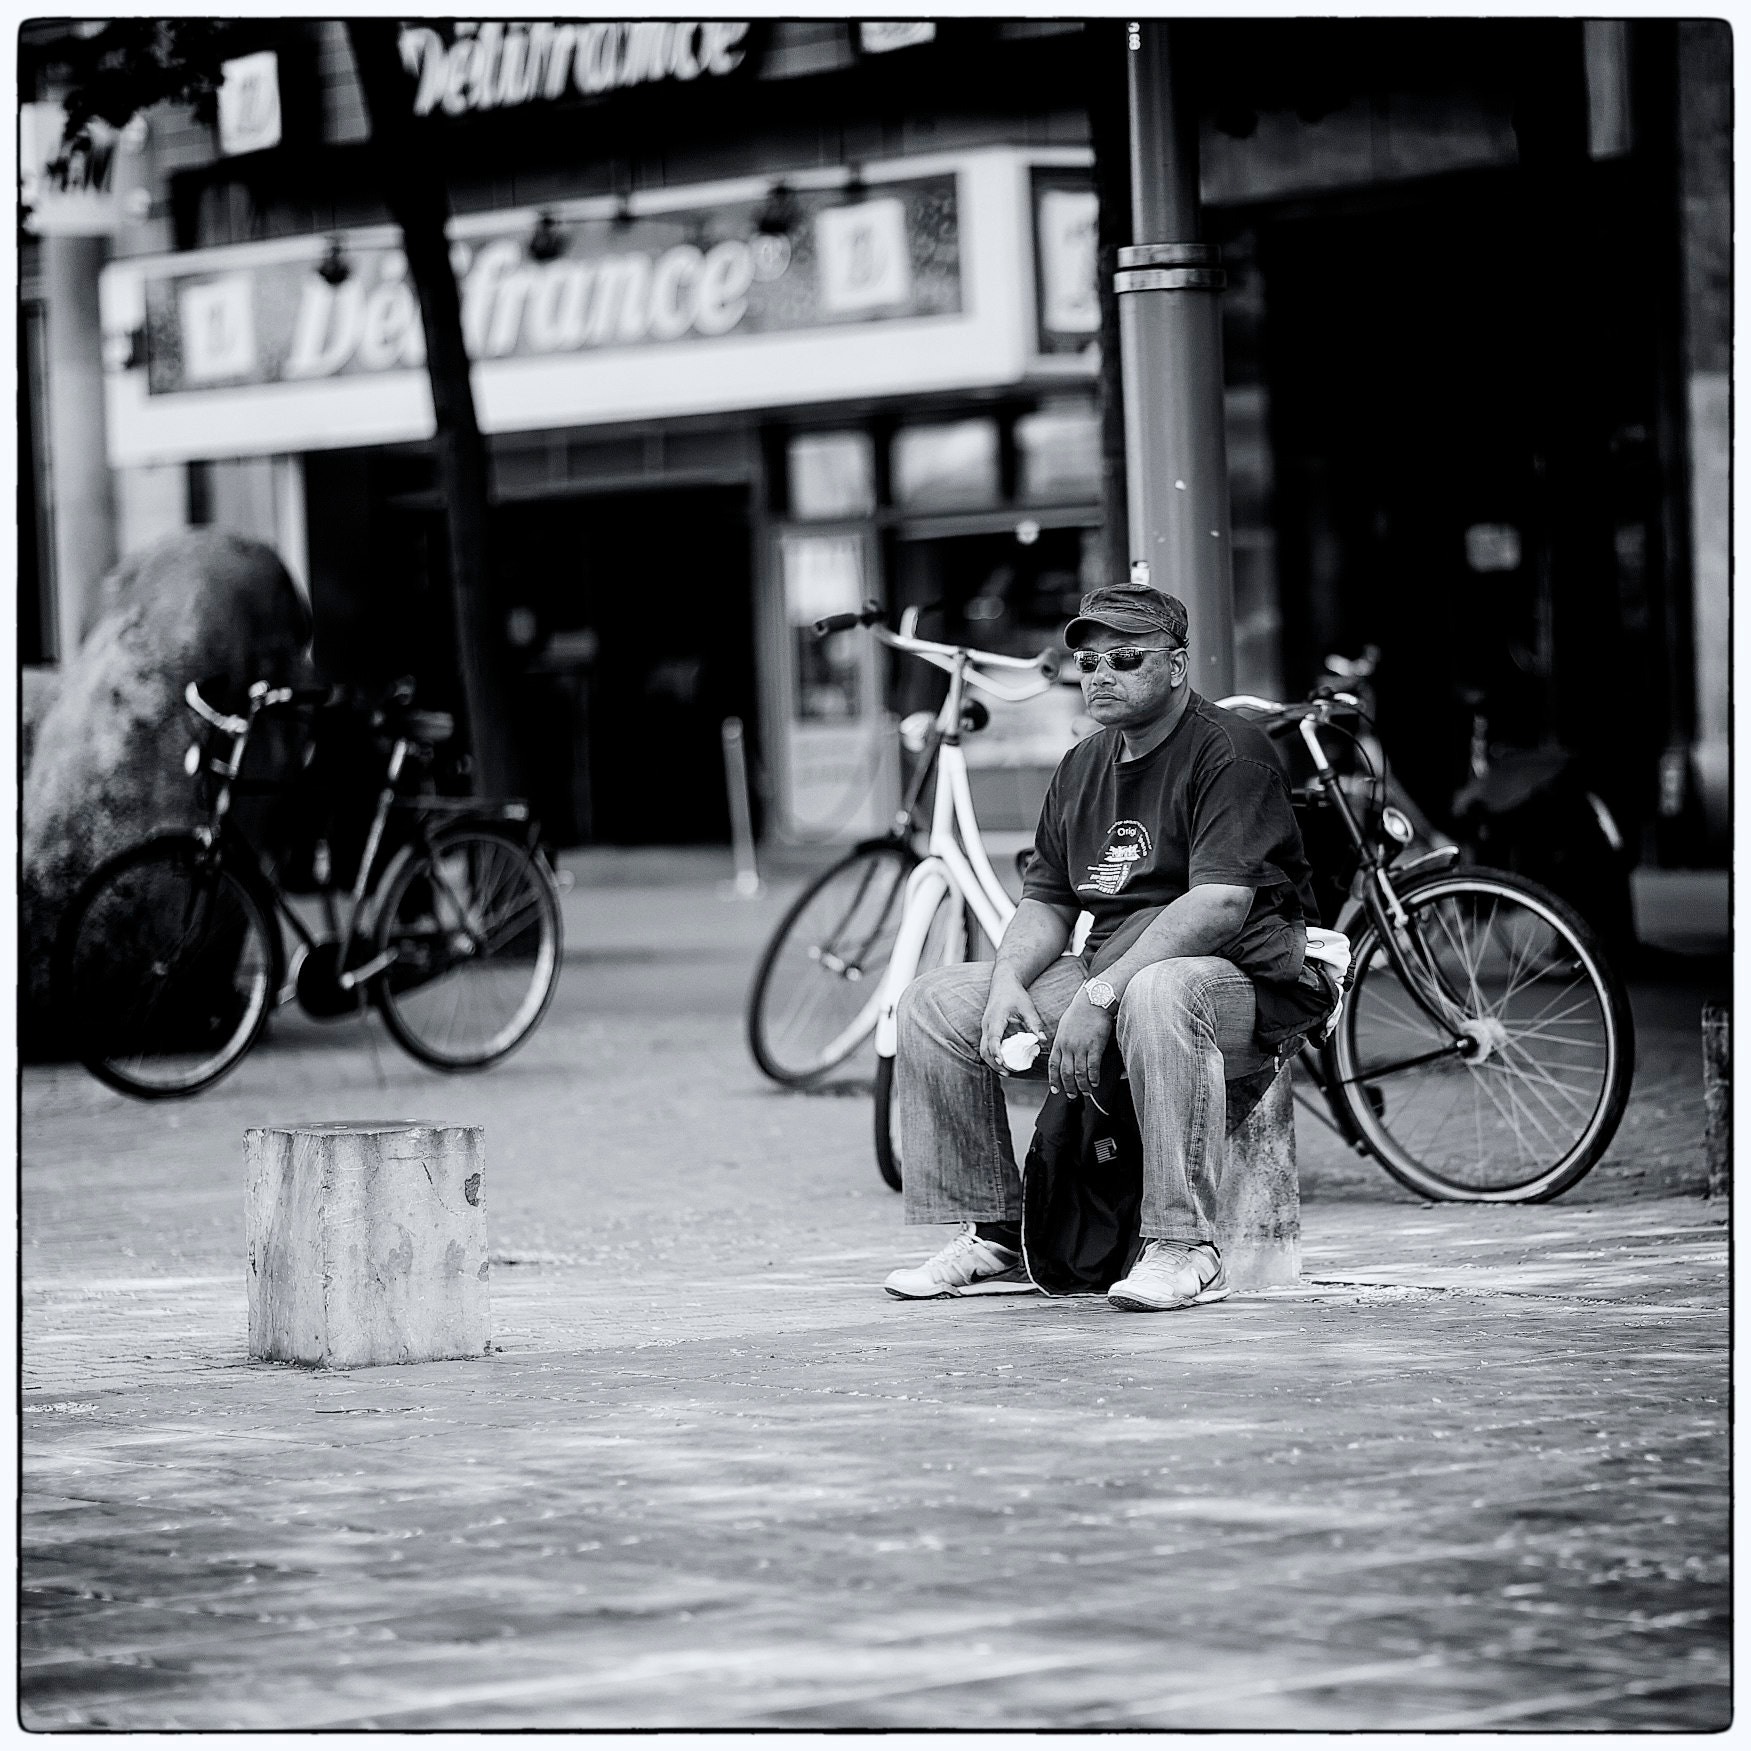 Photograph The Curious Condition of Urban Loneliness by Fouquier  on 500px